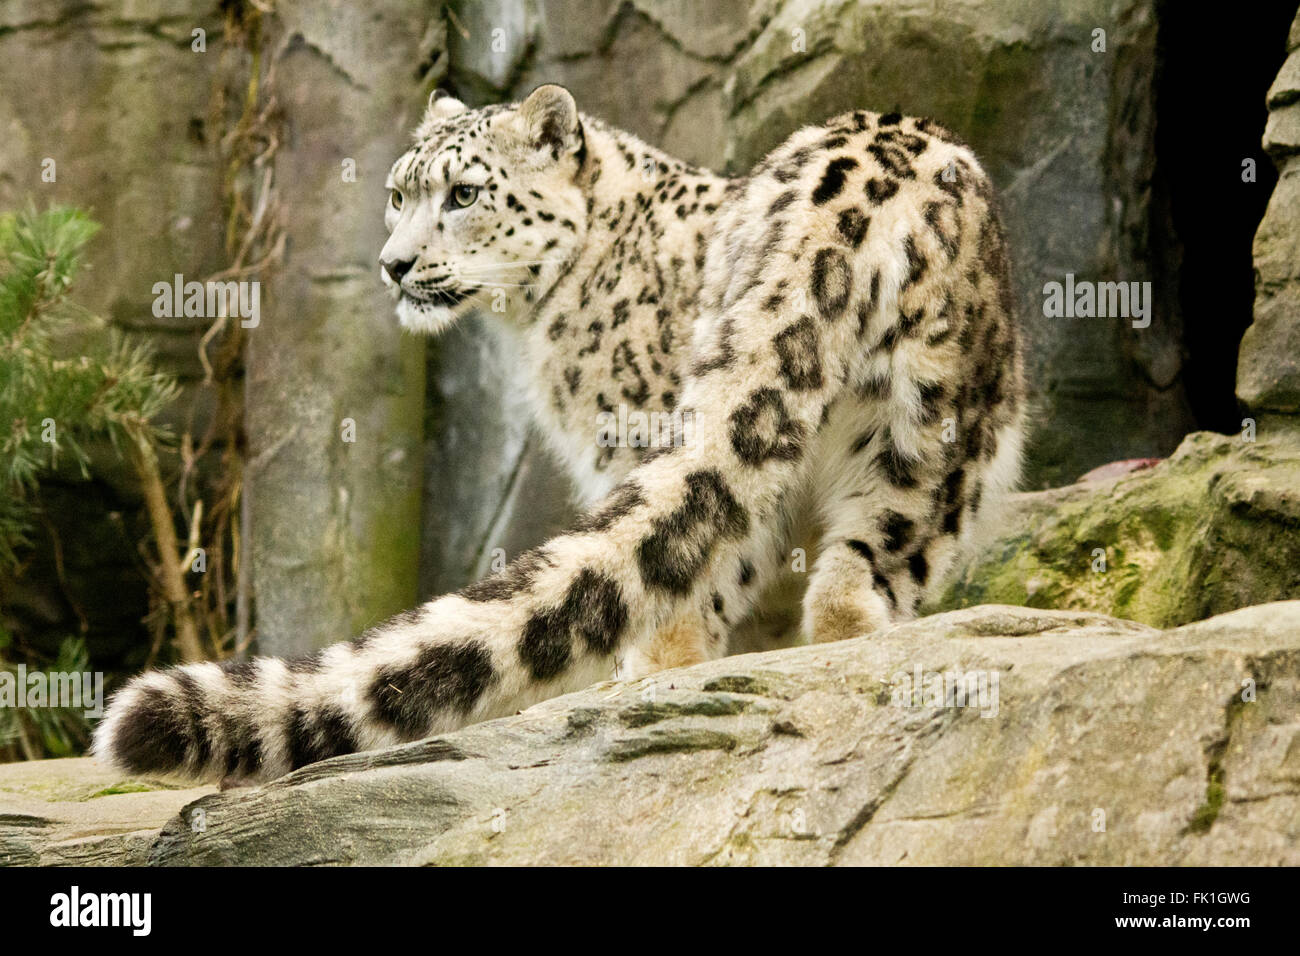 Snow leopard showing long detailed tail in foreground. Landscape format. Big white cat with black markings in captive - Stock Image